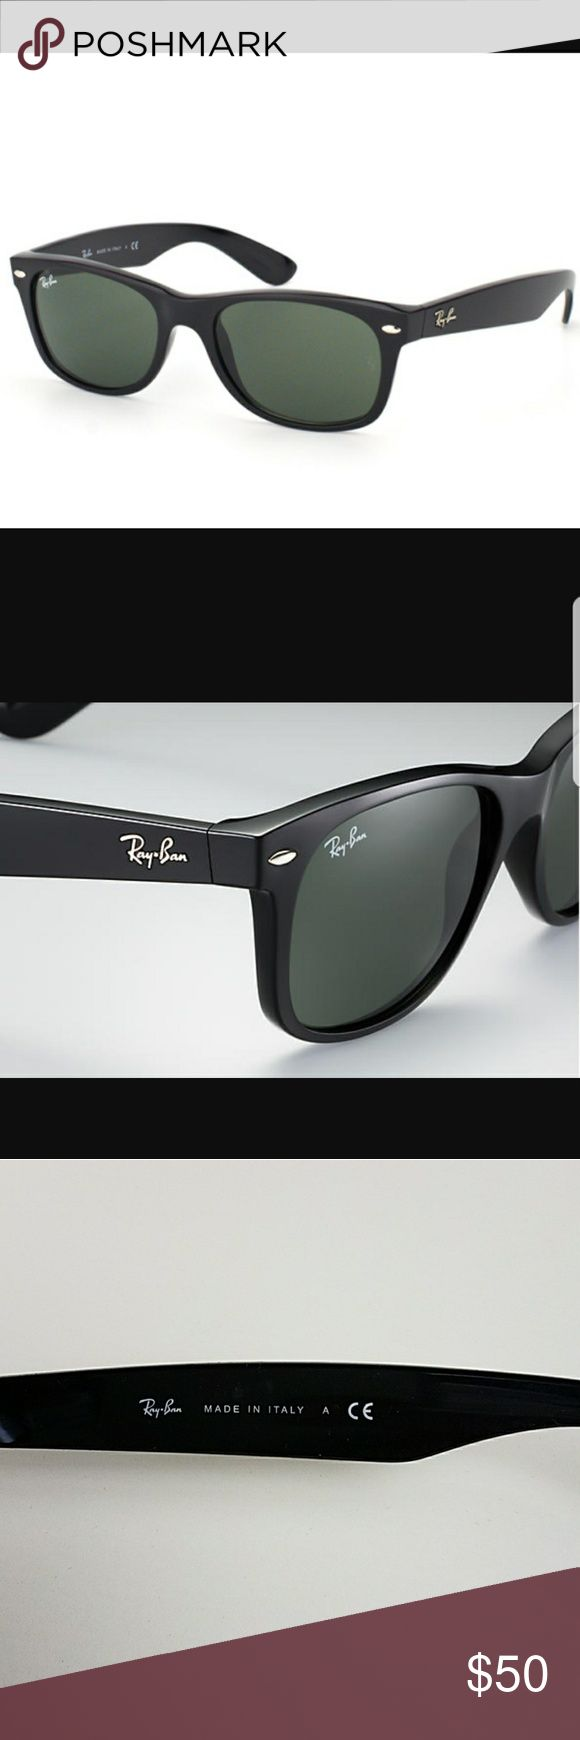 Ray-Ban New Wayfarer Classic Authentic Sunglasses NEW WAYFARER CLASSIC Model code:RB2132 901 52-18  Go back to where it all began with Ray-BanNew Wayfarer Classicsunglasses. Using the same iconic shape as the classicWayfarer, these sunglasses offer an updated version that includes a smaller frame and slightly softer eye shape.  Classic black Frame Green Classic G-15 Lenses  Shape: Square Size Lens-bridge: 52-18  Temple Length: 145  New with case and cleaning cloth. Ray-Ban Accessories…